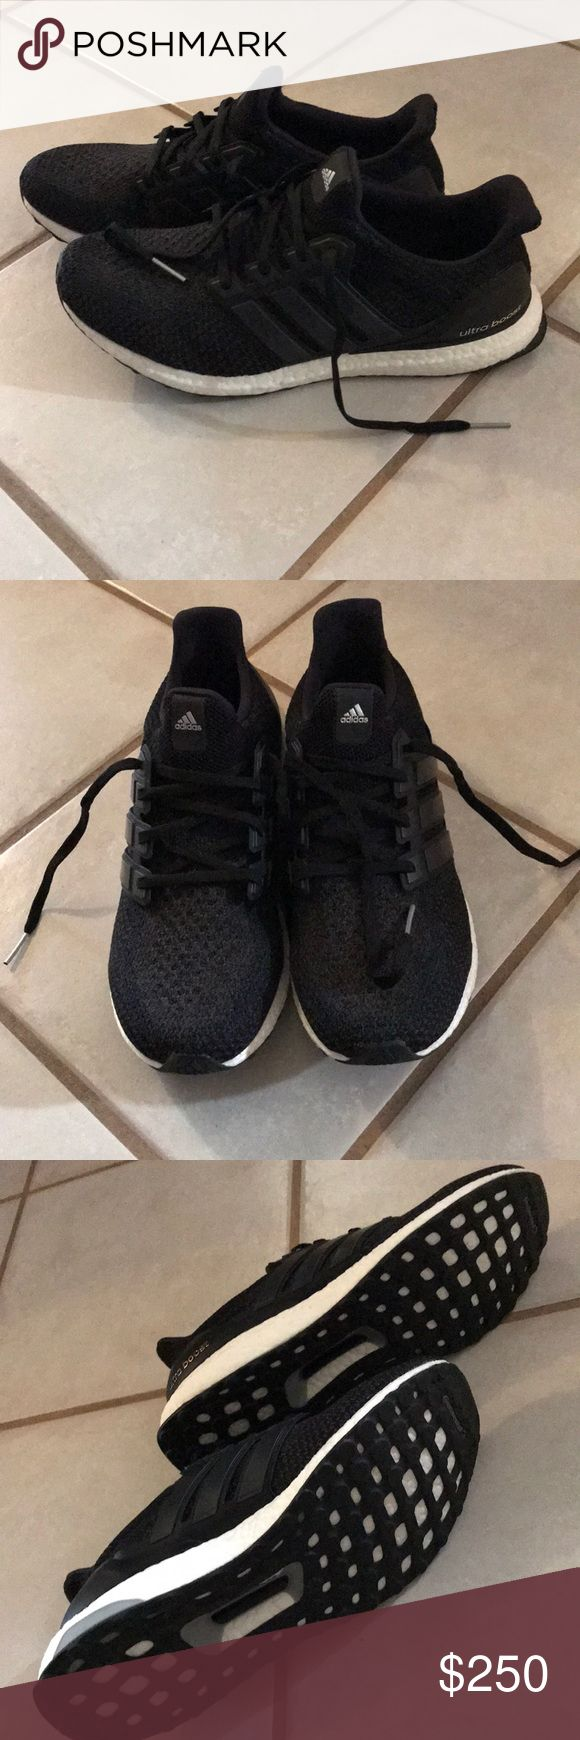 Men's Adidas Ultra Boost  Size 12 Brand new men's Adidas ultra boost shoes.  Size 12.  Never used. No tags adidas Shoes Sneakers